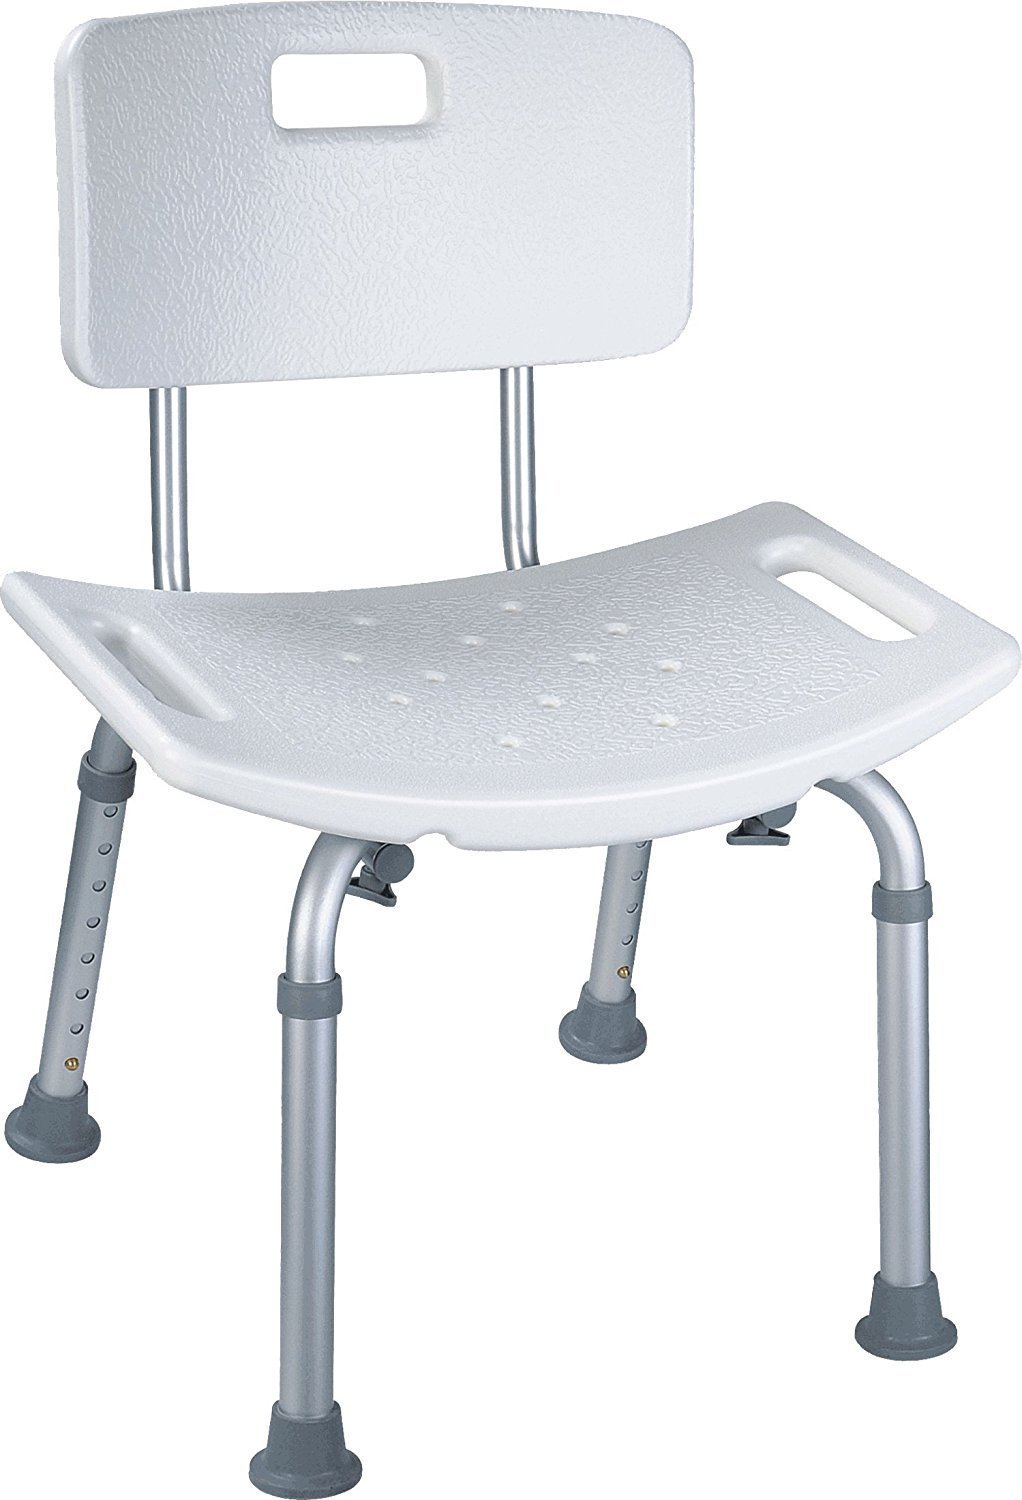 Shower Chair Tool-Free Plastic Showering Anti-Slip Transfer Bench Bathtub Seat for Bathroom Safety Withe Adjustable Legs and Removable Back Rest Lightweight